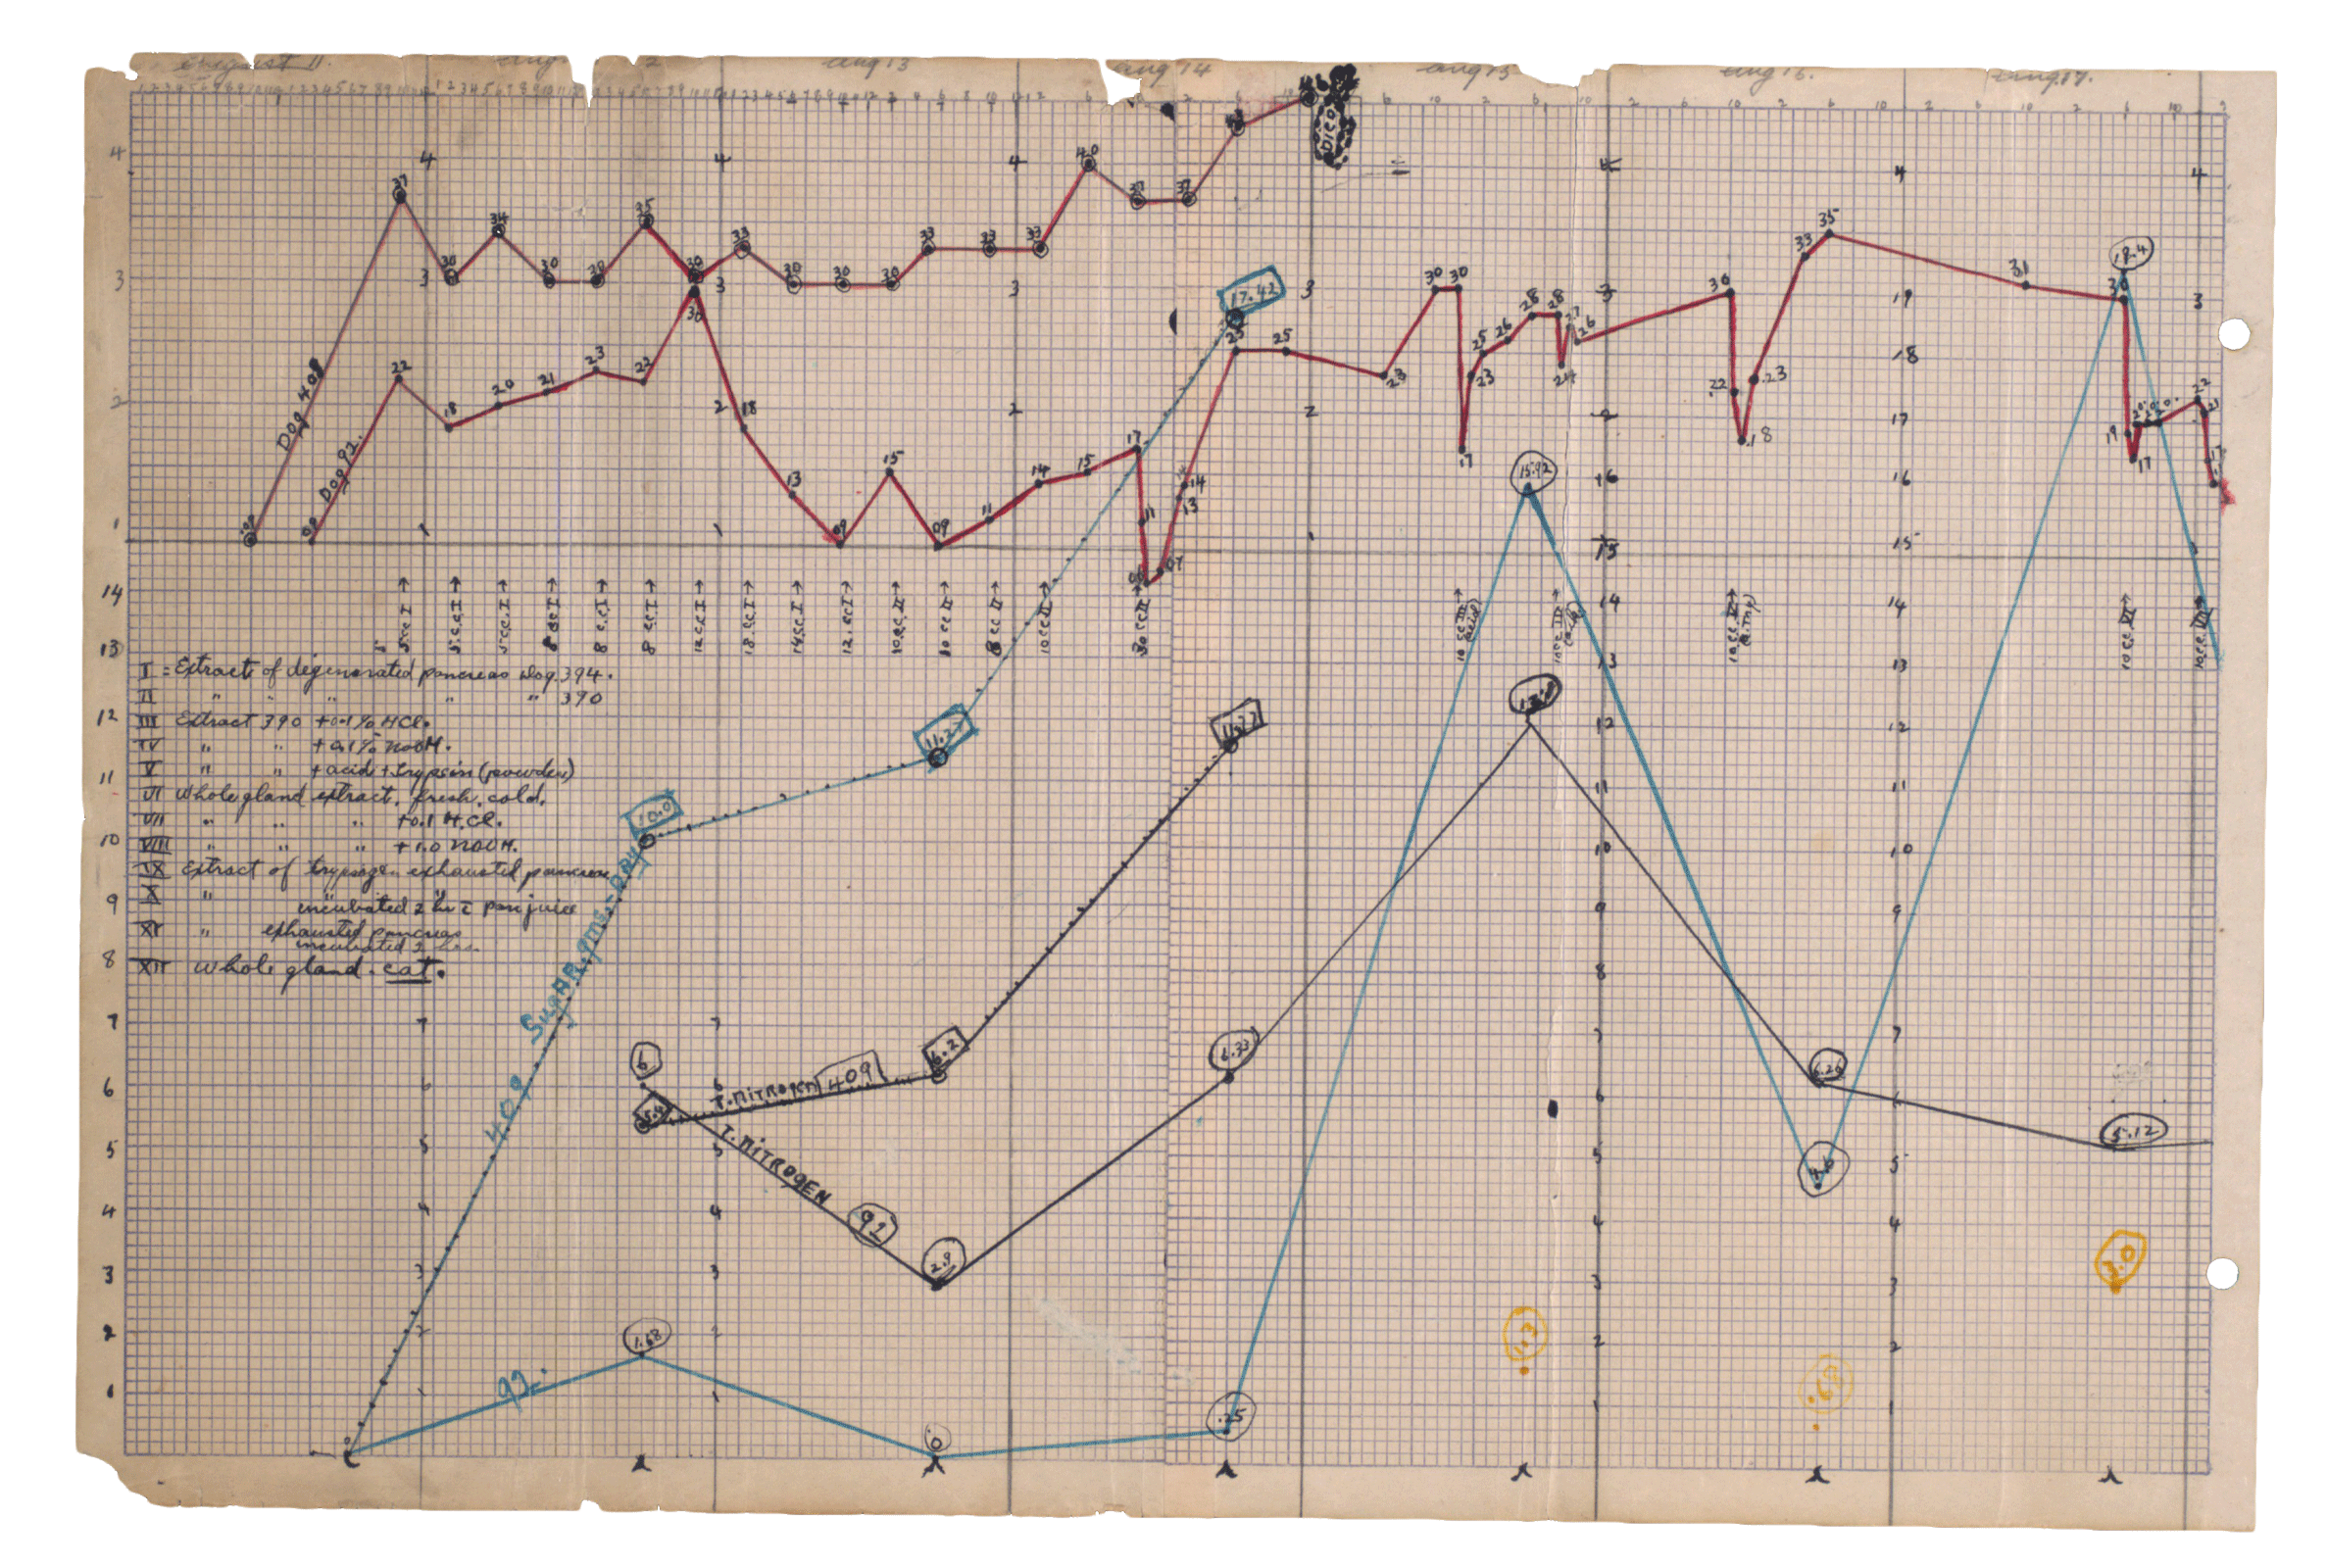 A scanned image of plotted line graphs illustrating dramatic reductions in blood sugar.